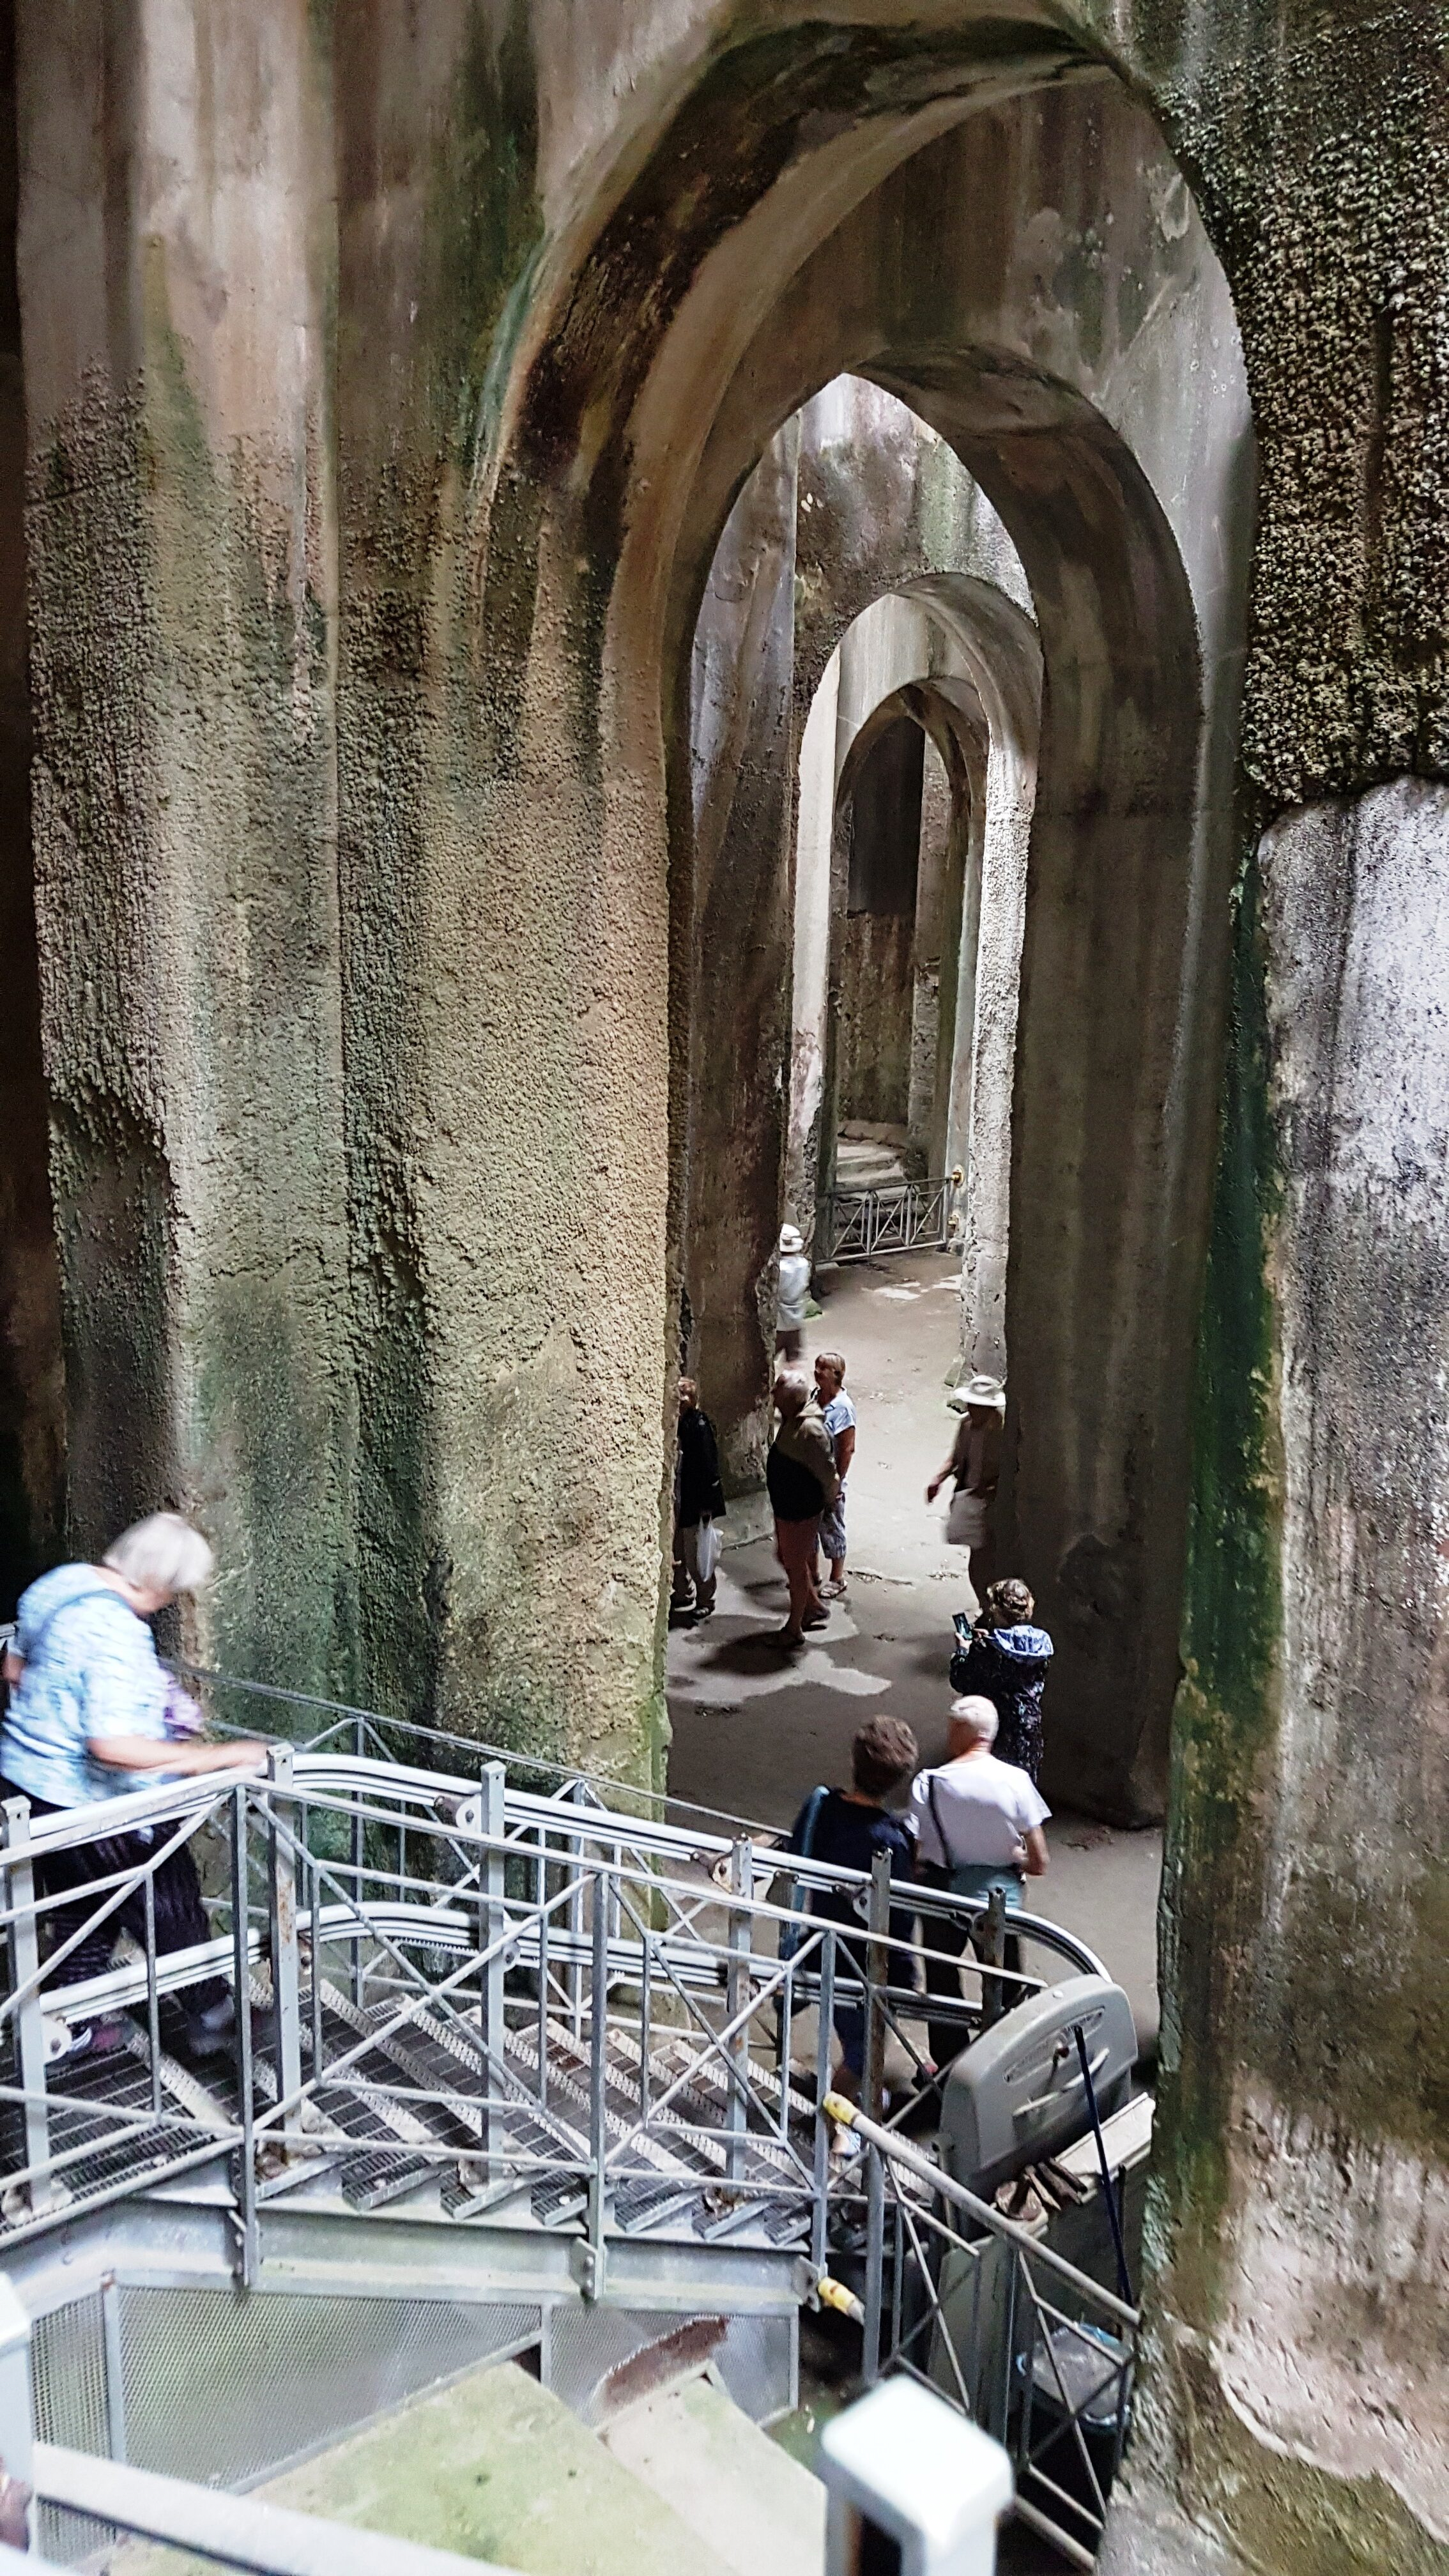 The society visits the magnificent Roman cistern at Pozzuoli, Italy. Sept 2019